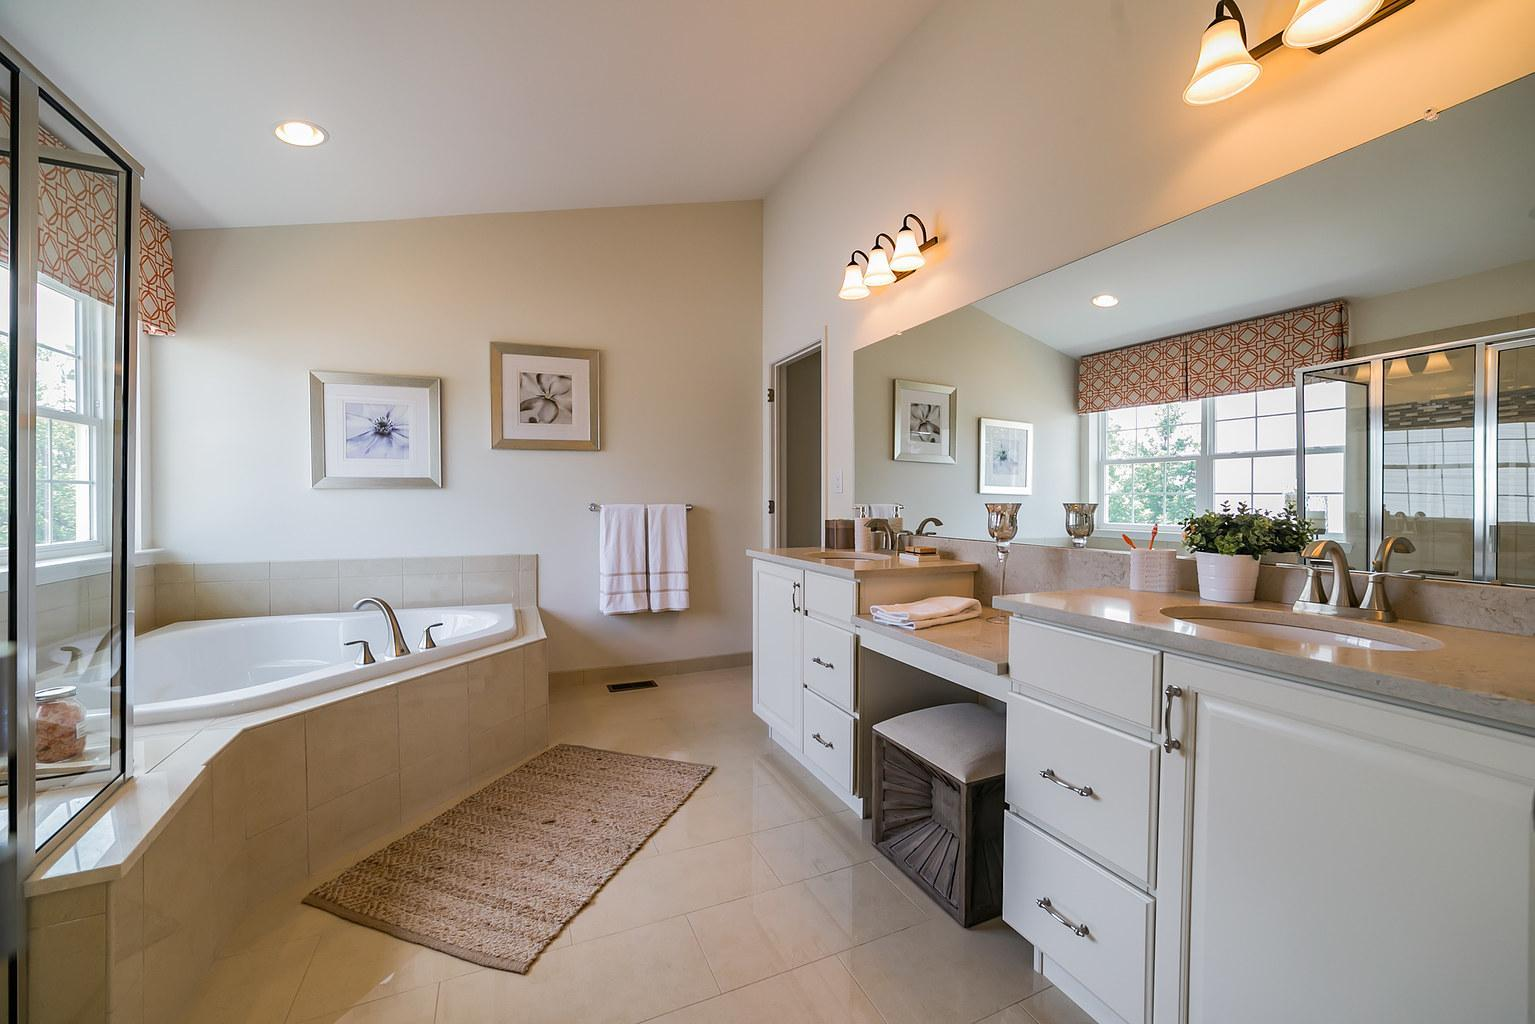 Bathroom featured in The Jefferson-Side Entry By Hallmark Homes Group in Philadelphia, PA